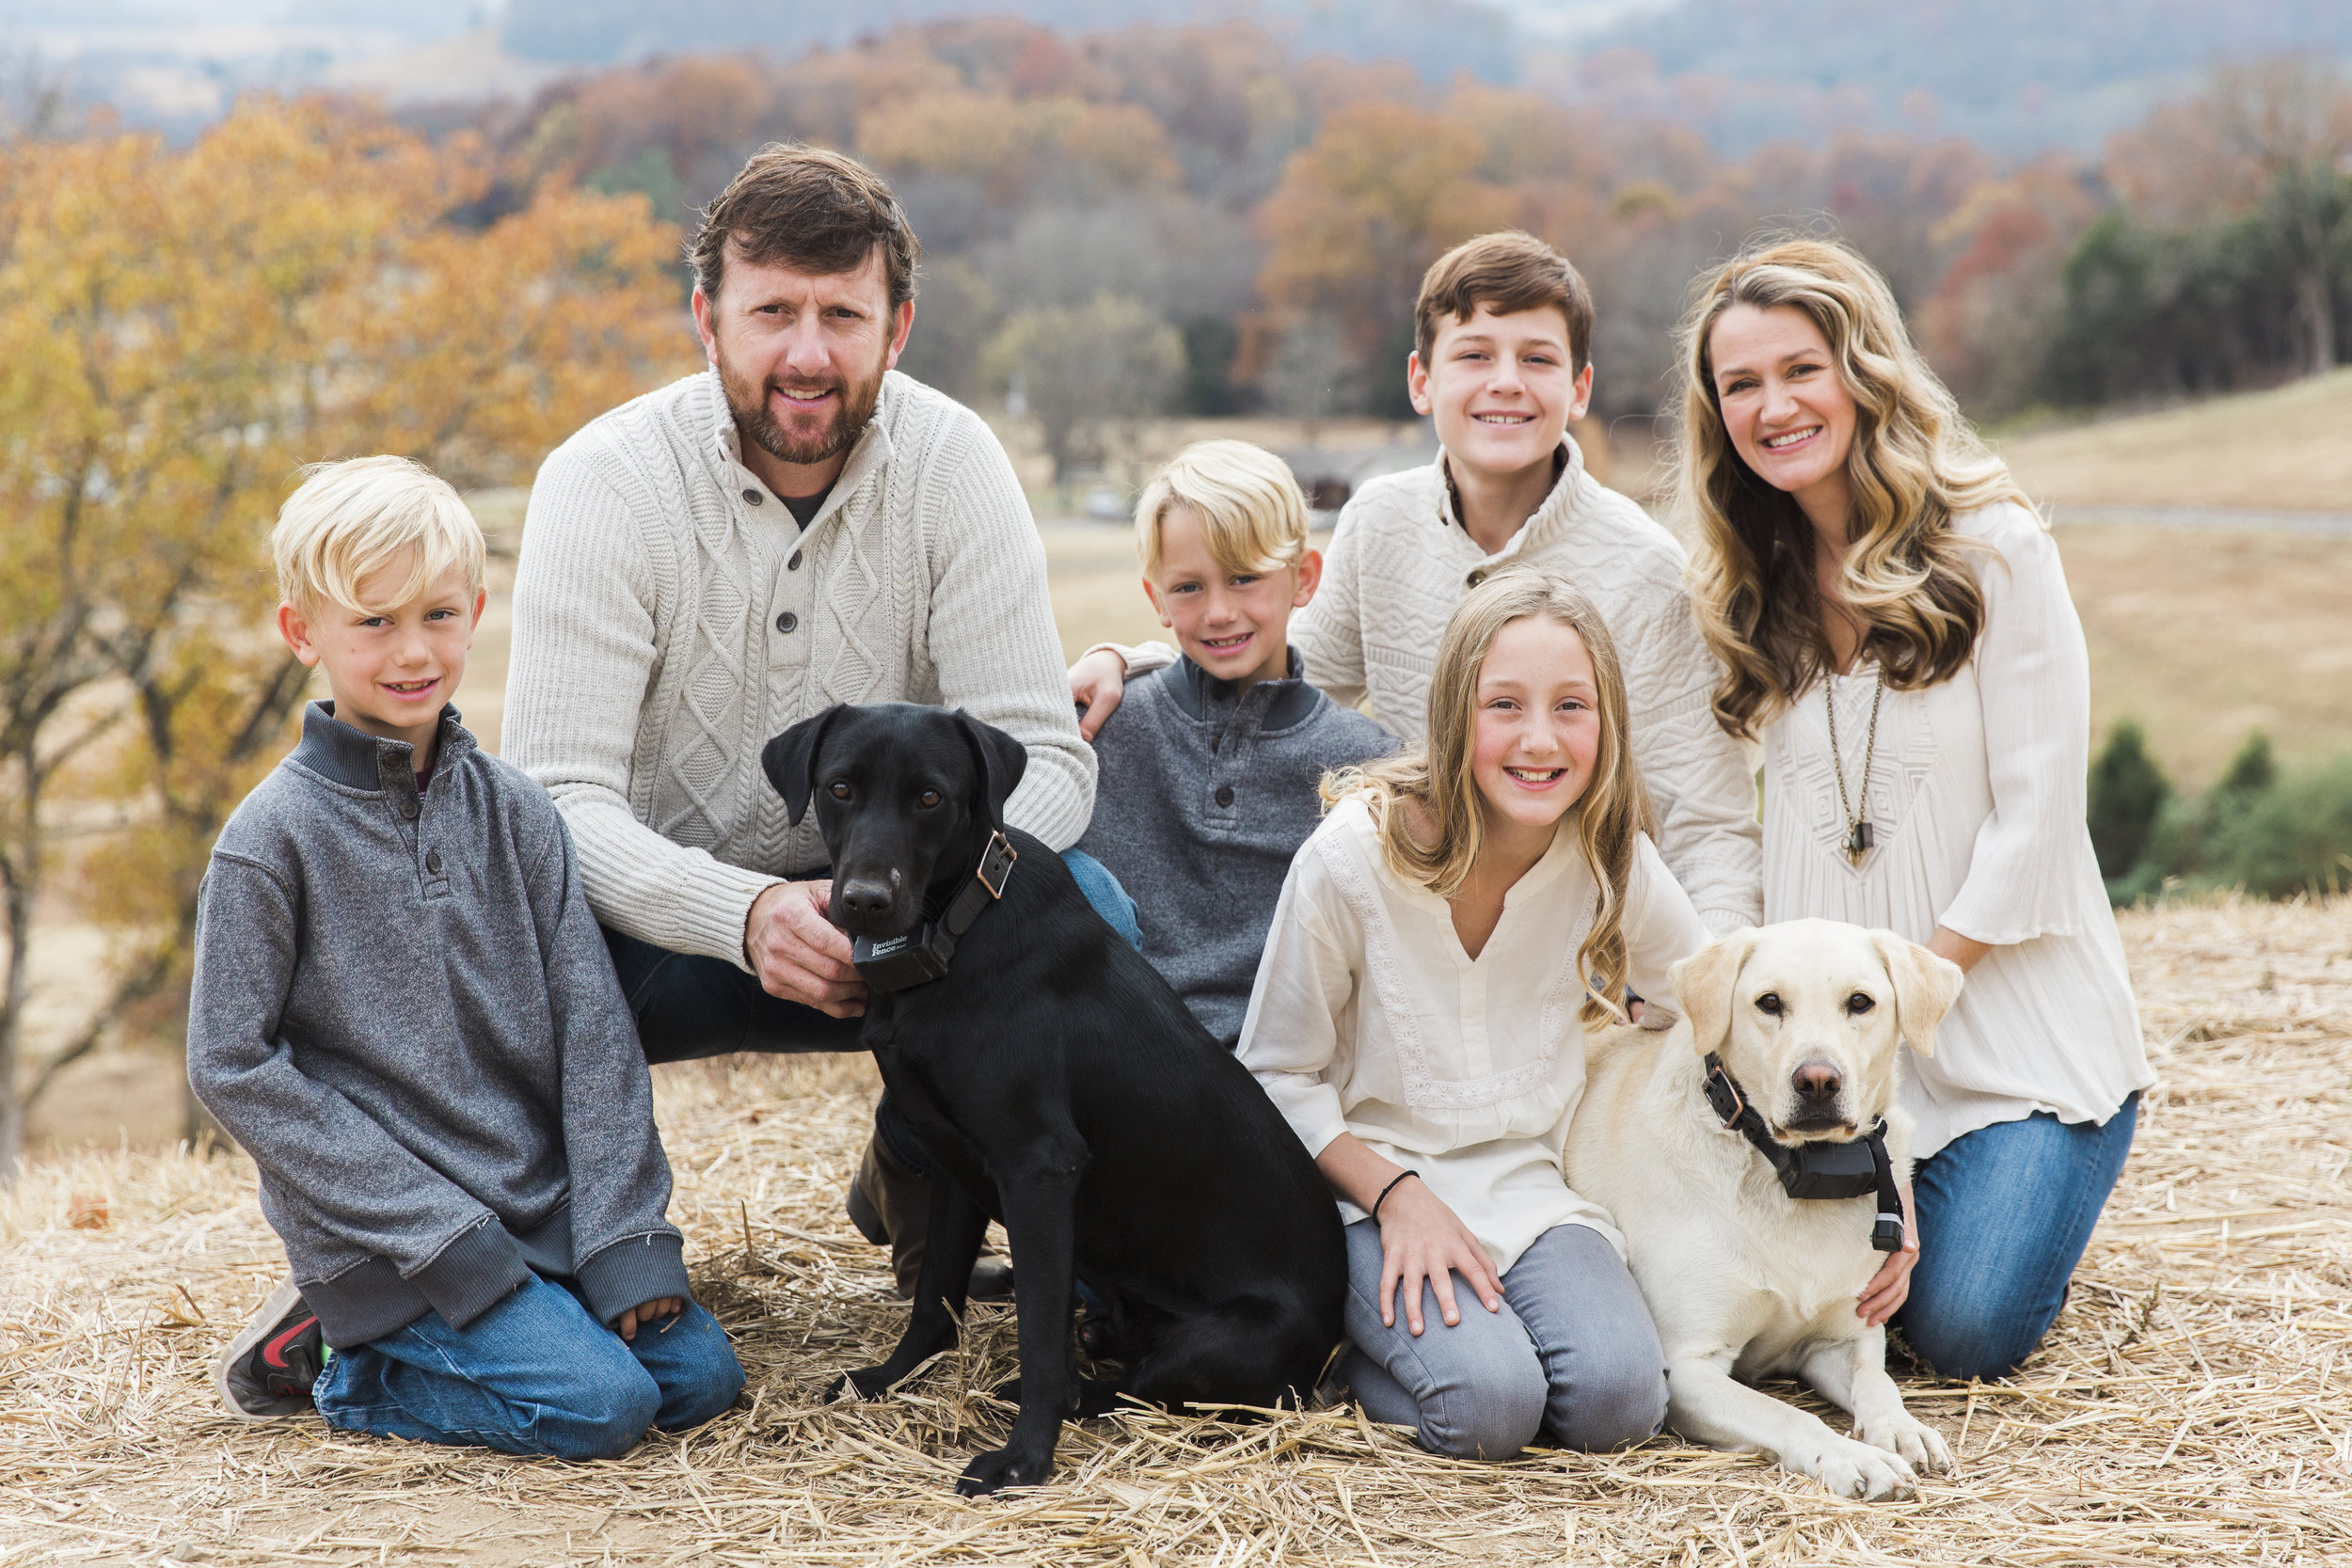 Brandon Chesbro Family Photographer Photo-16.jpg